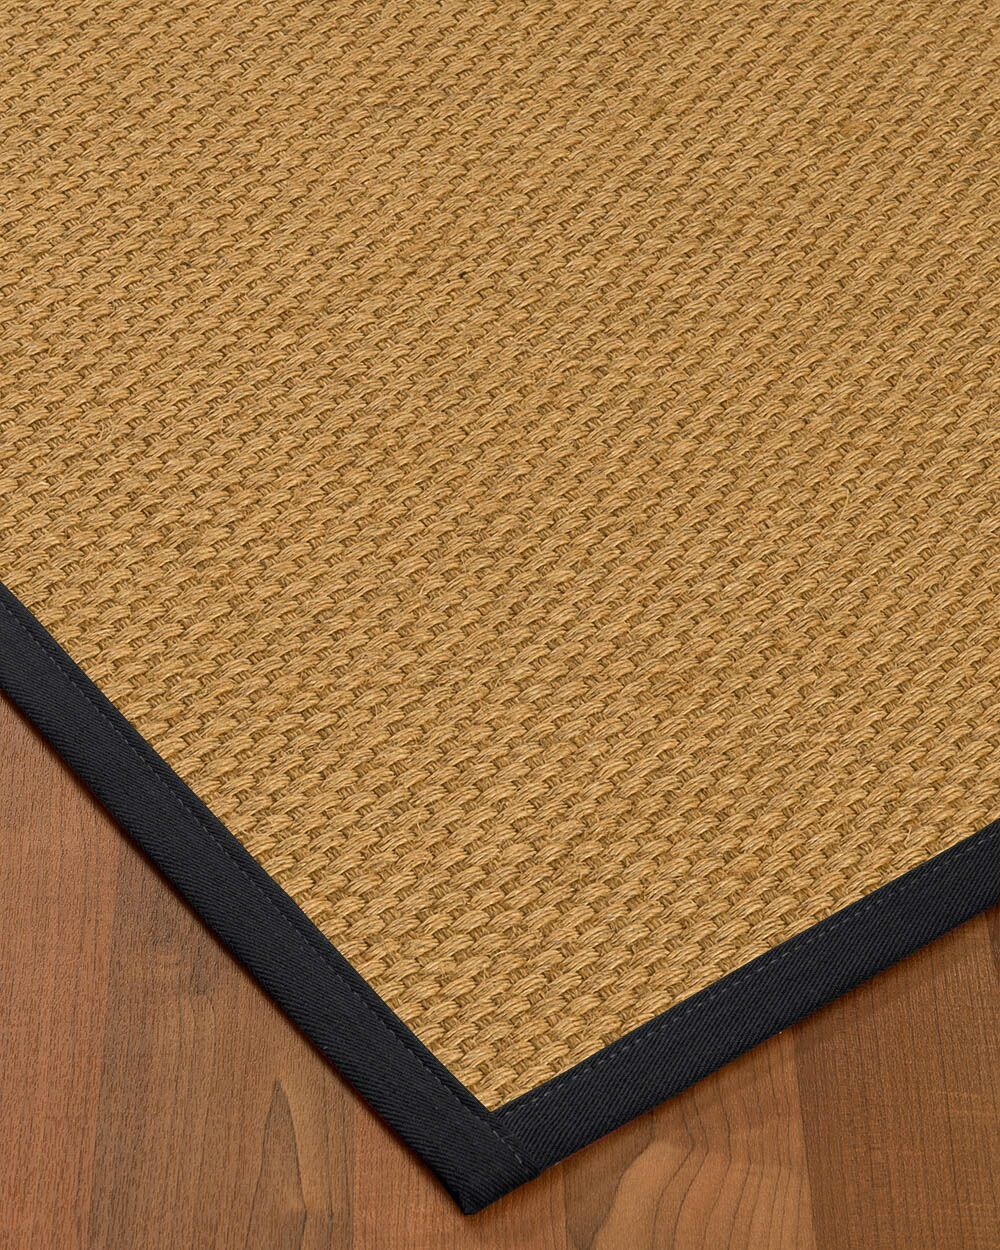 Kimpel Hand-Woven Beige Area Rug Rug Size: Rectangle 6' x 9'